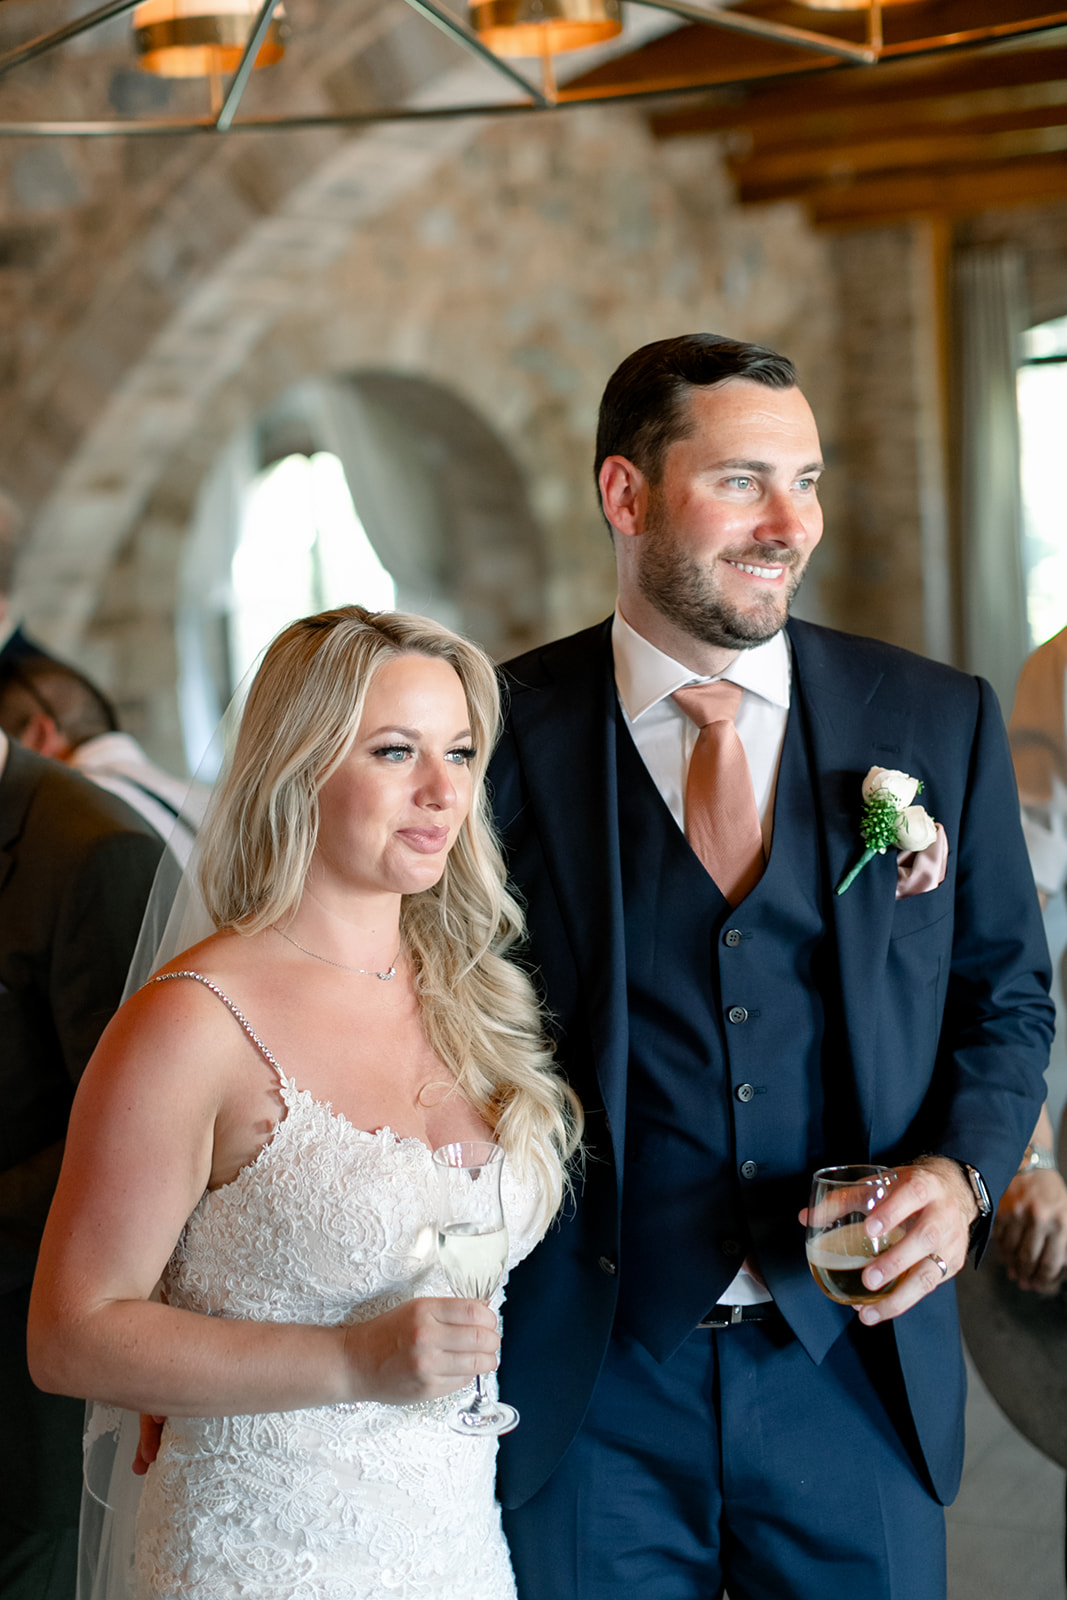 Richard and Zenia's special wedding gallery image 9